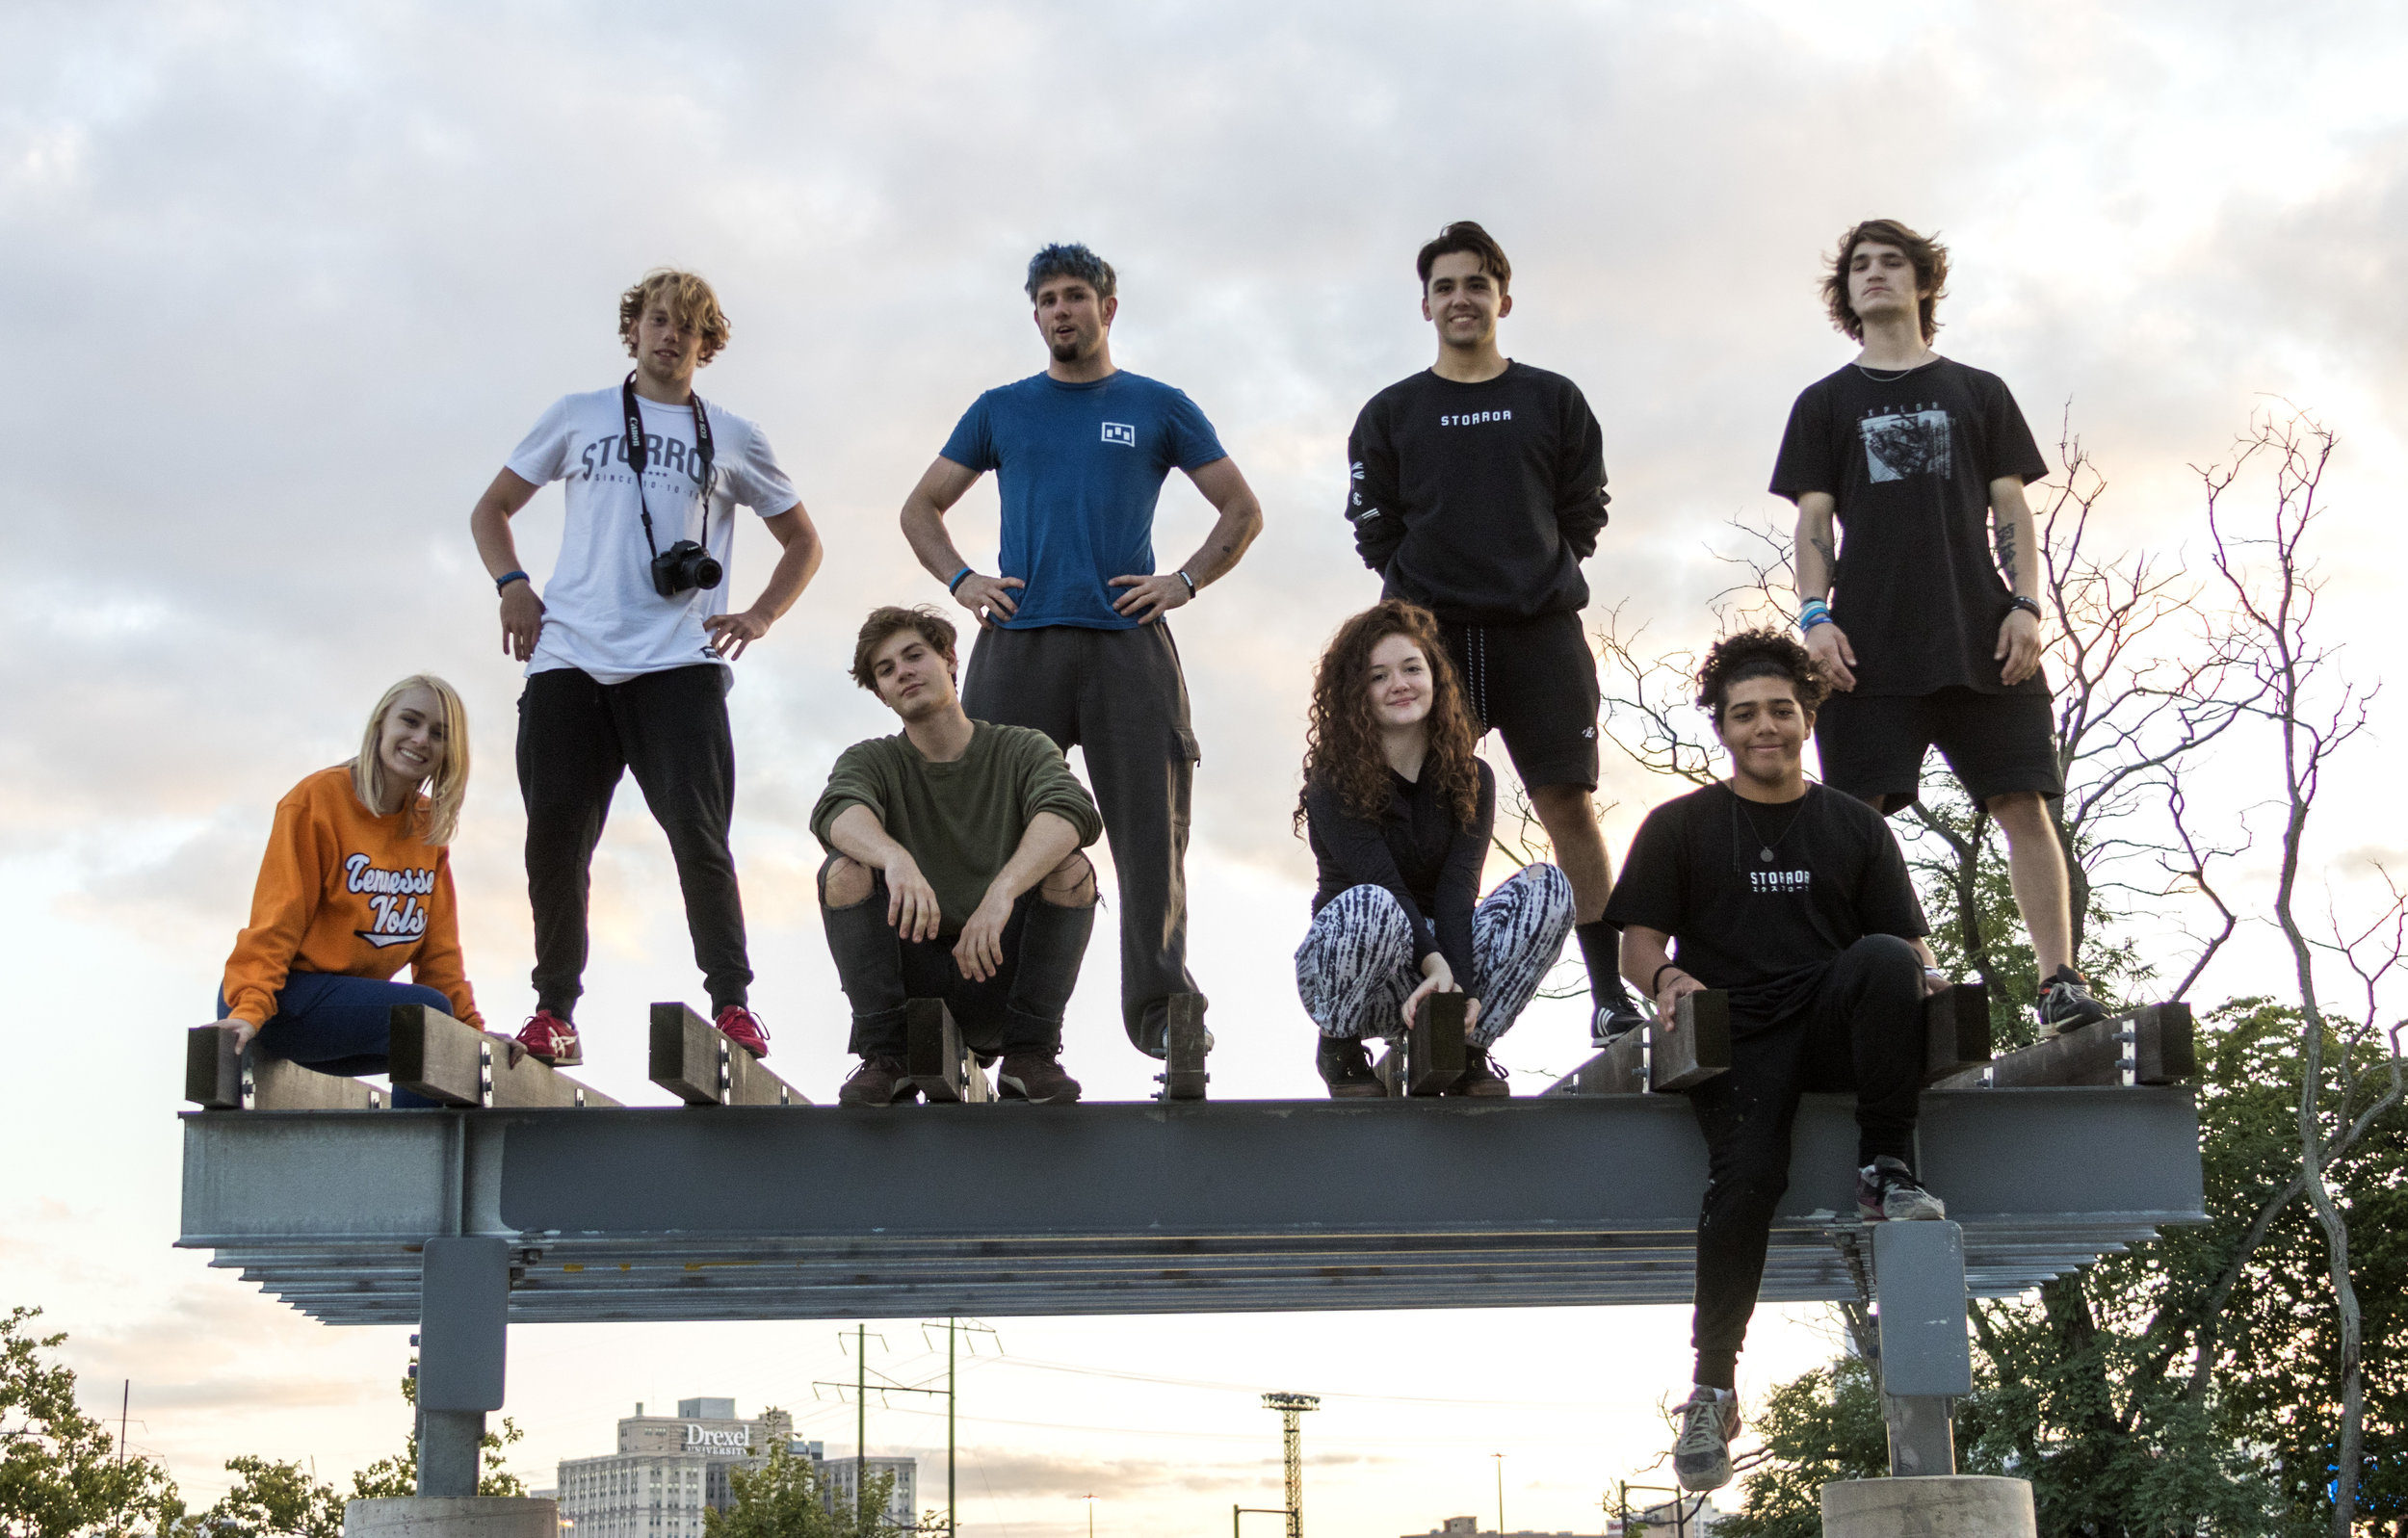 The Staff Photo on the thing that must be Climbed